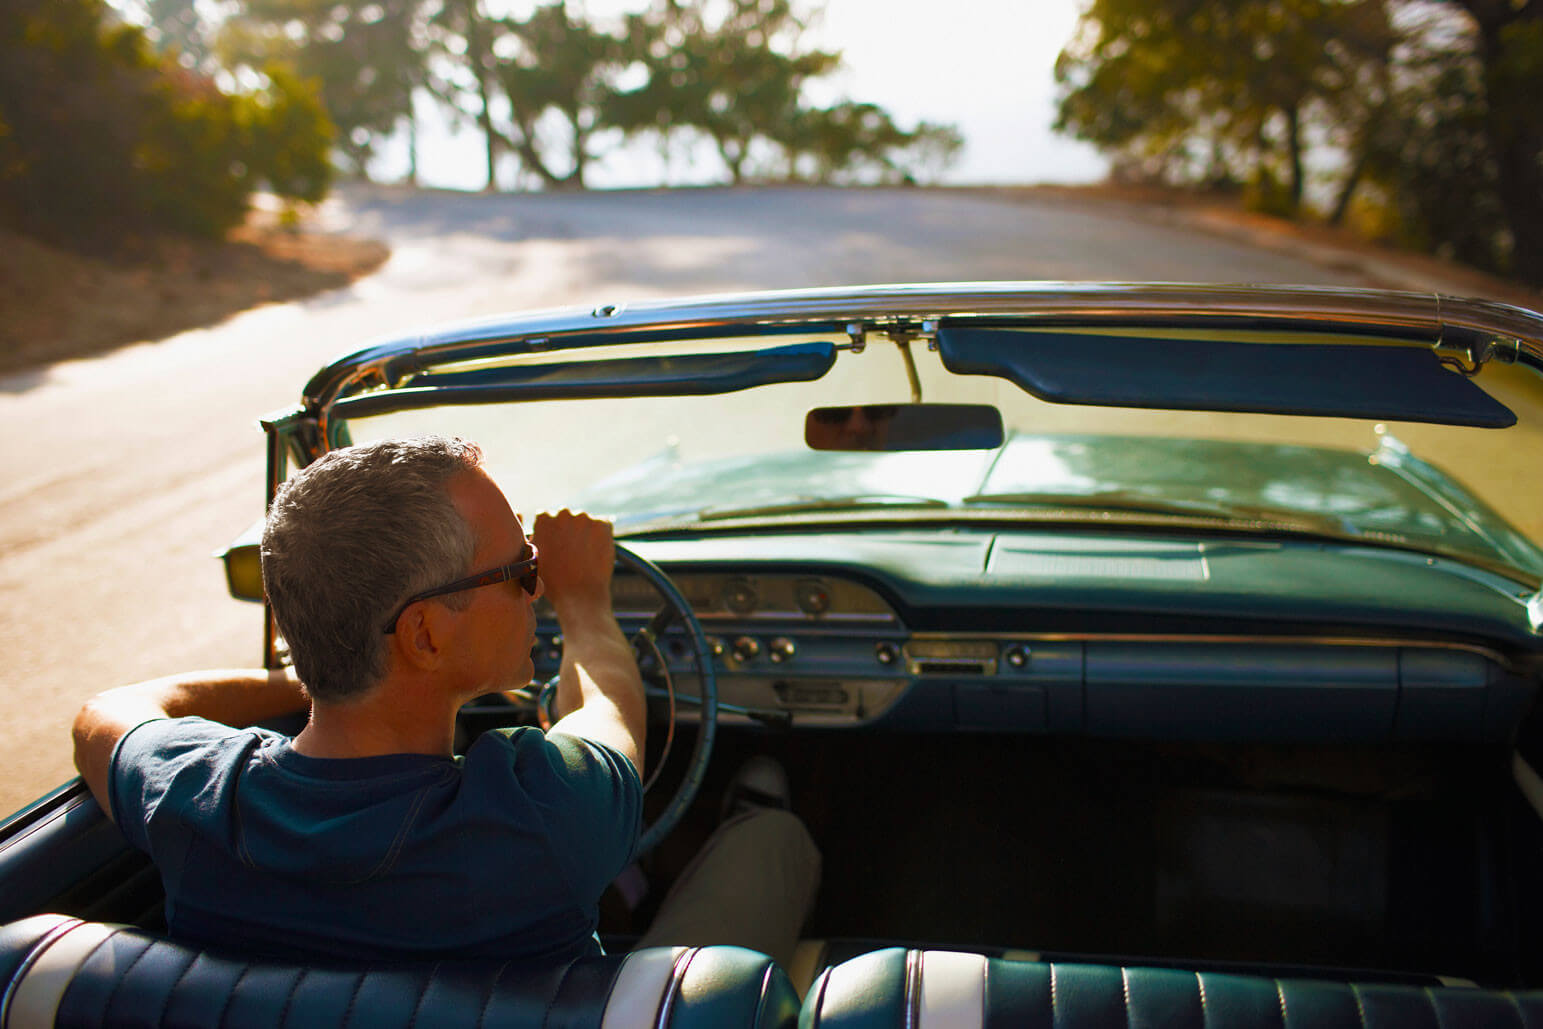 7 Steps to Get Your Classic Car Ready for Spring